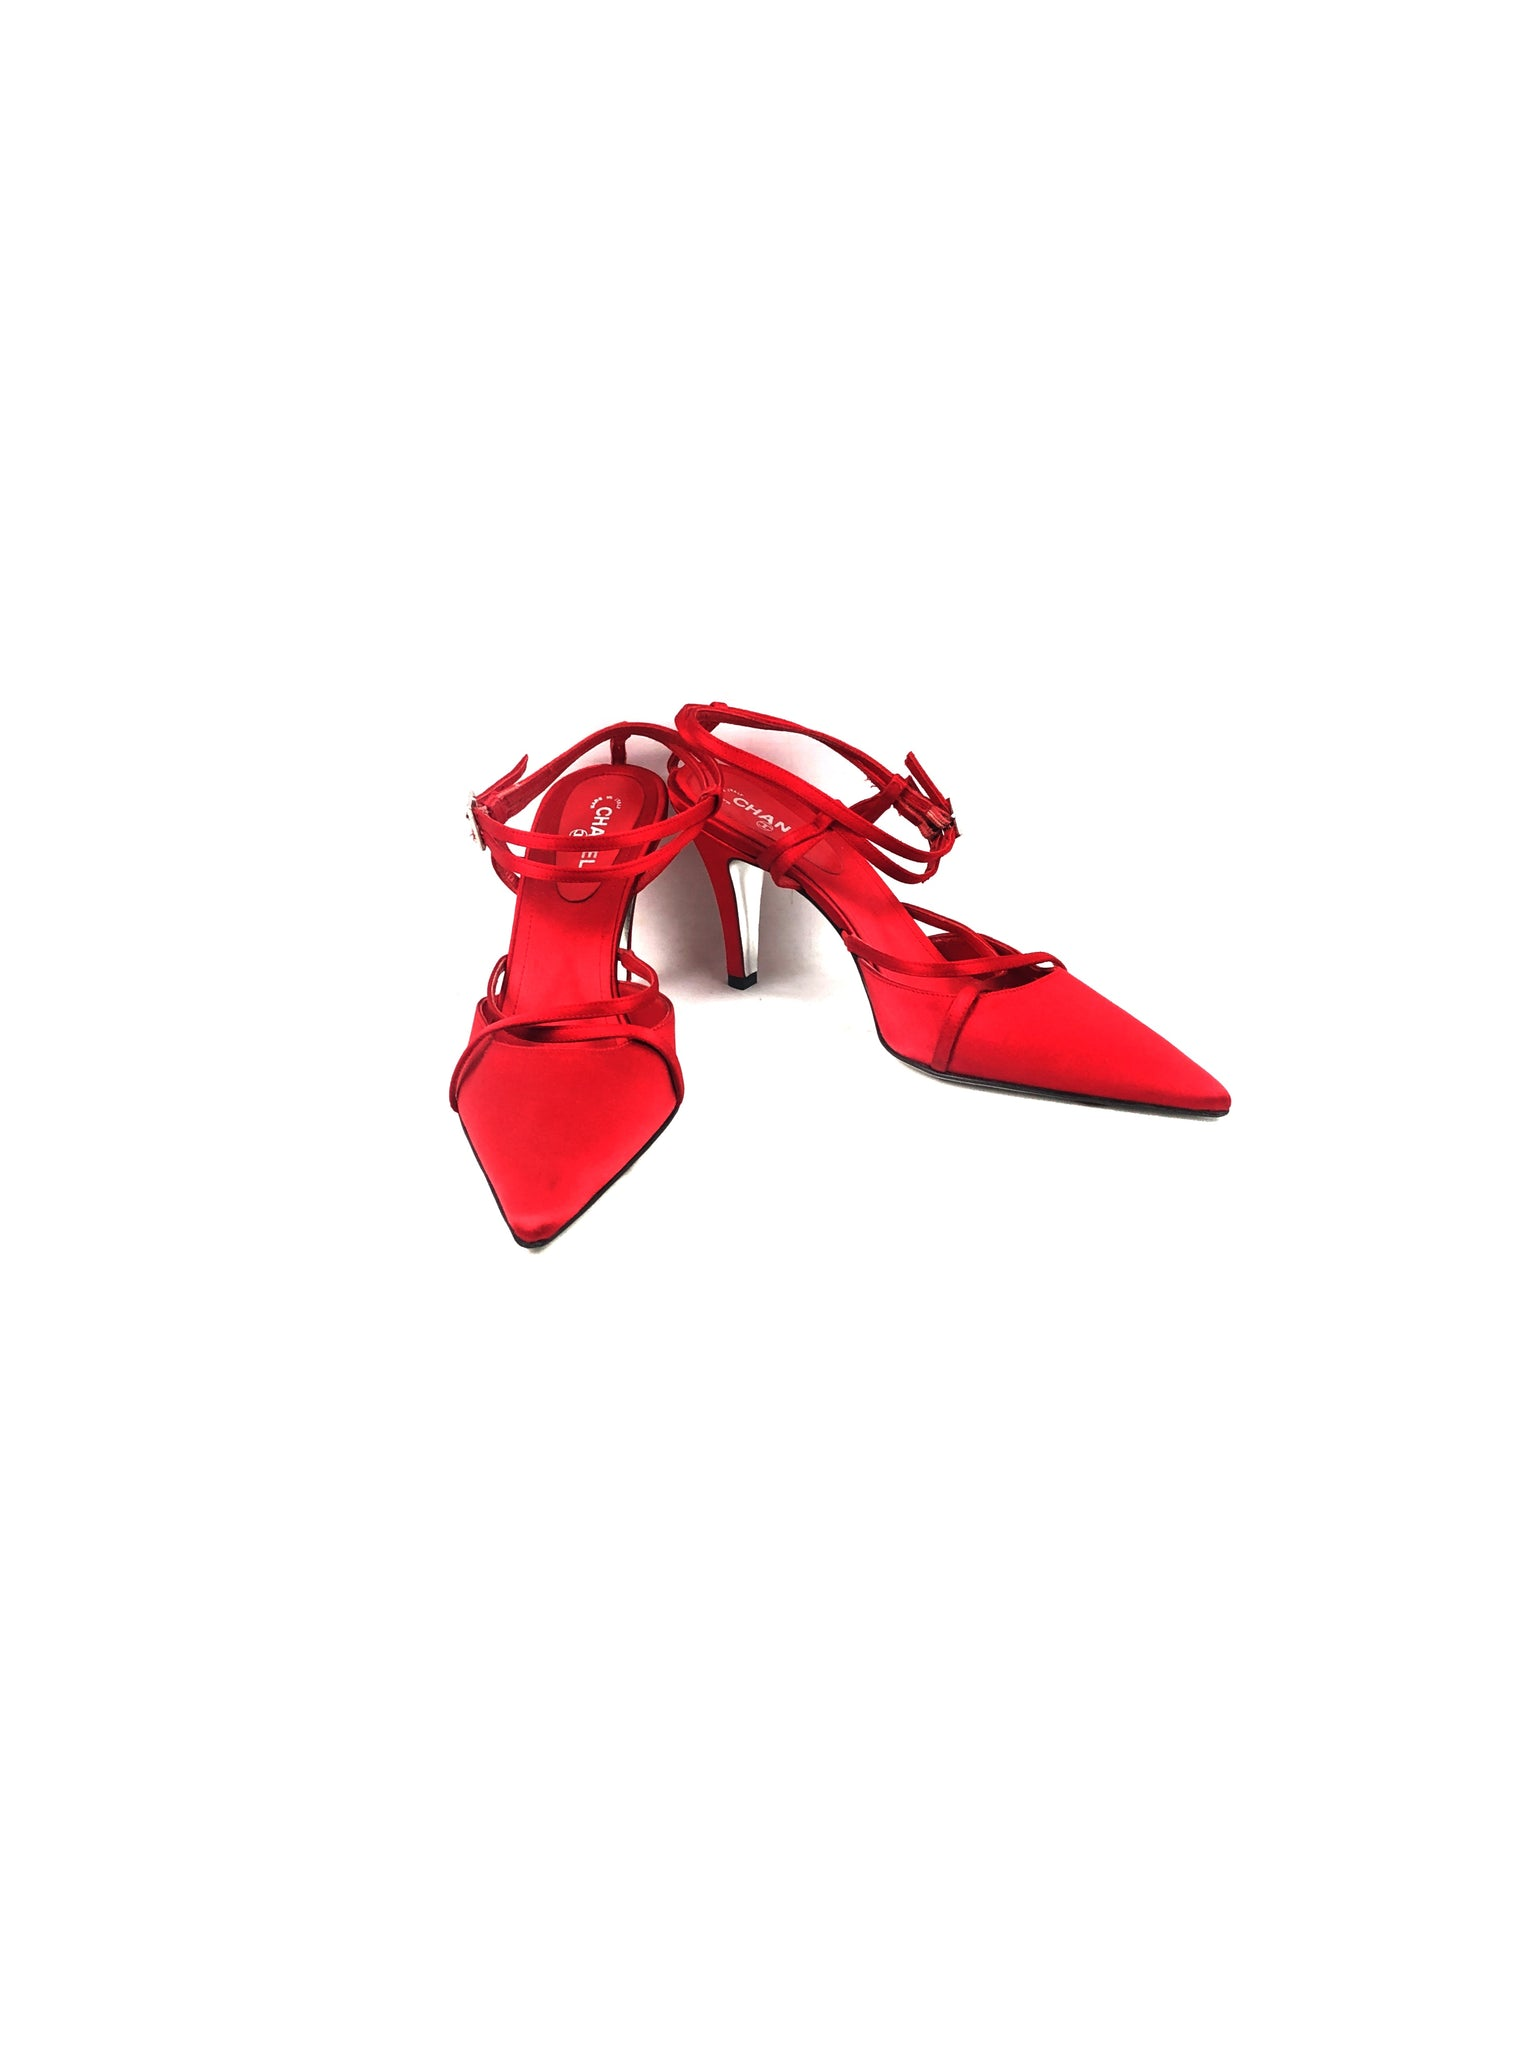 CHANEL Red Satin Pointed-Toe Low Heels